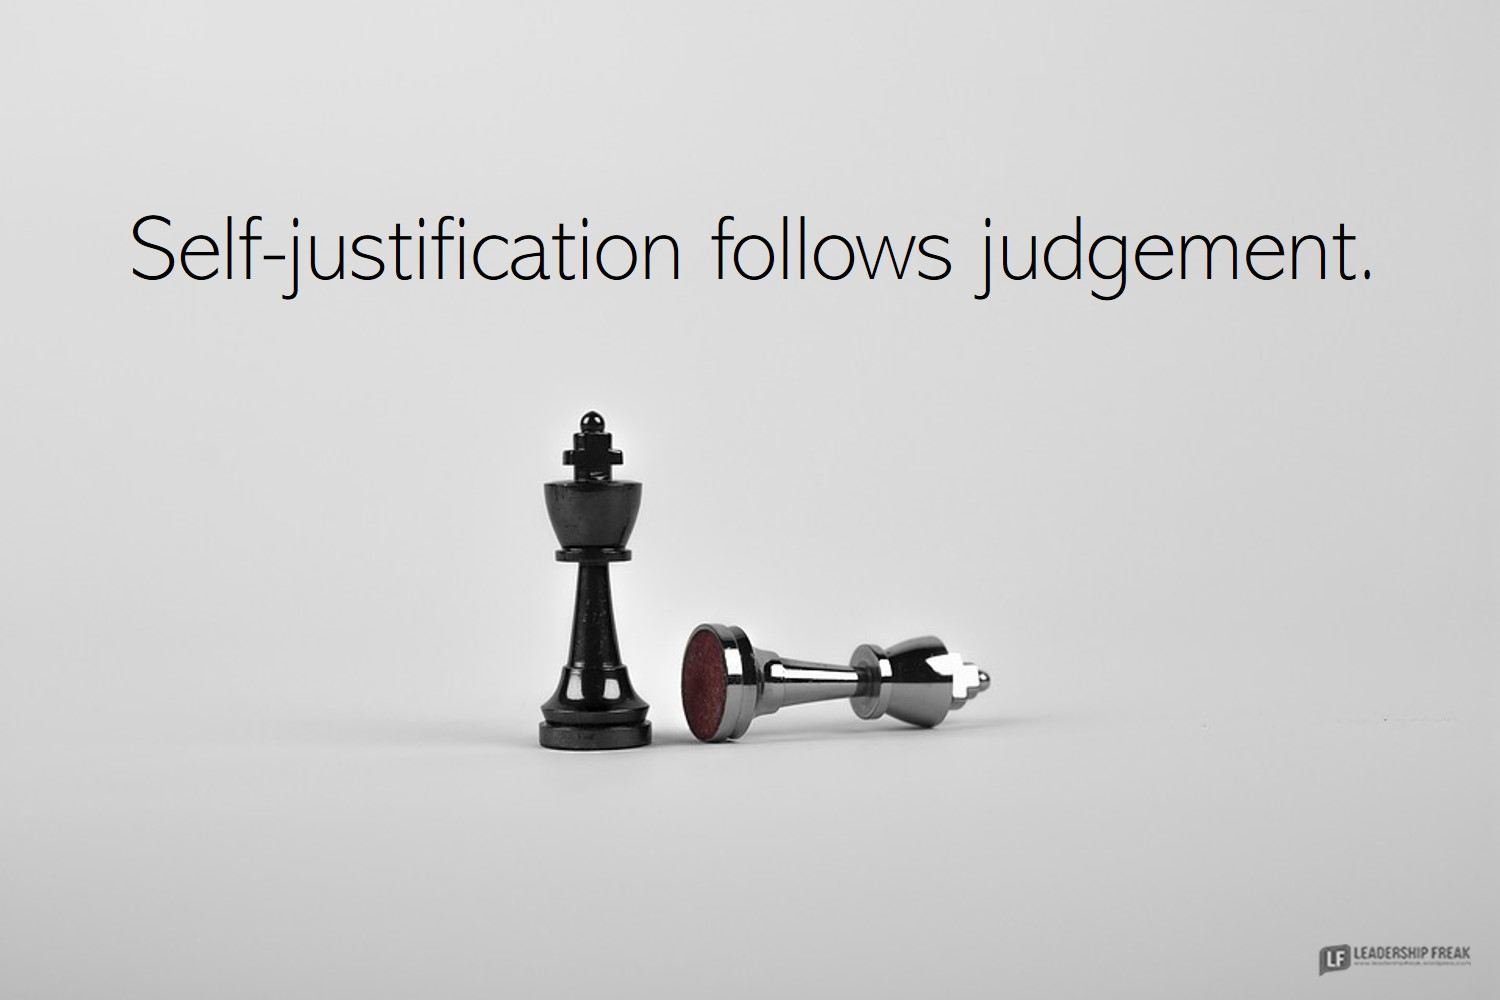 Chess pieces.  Self-justification follows judgment.